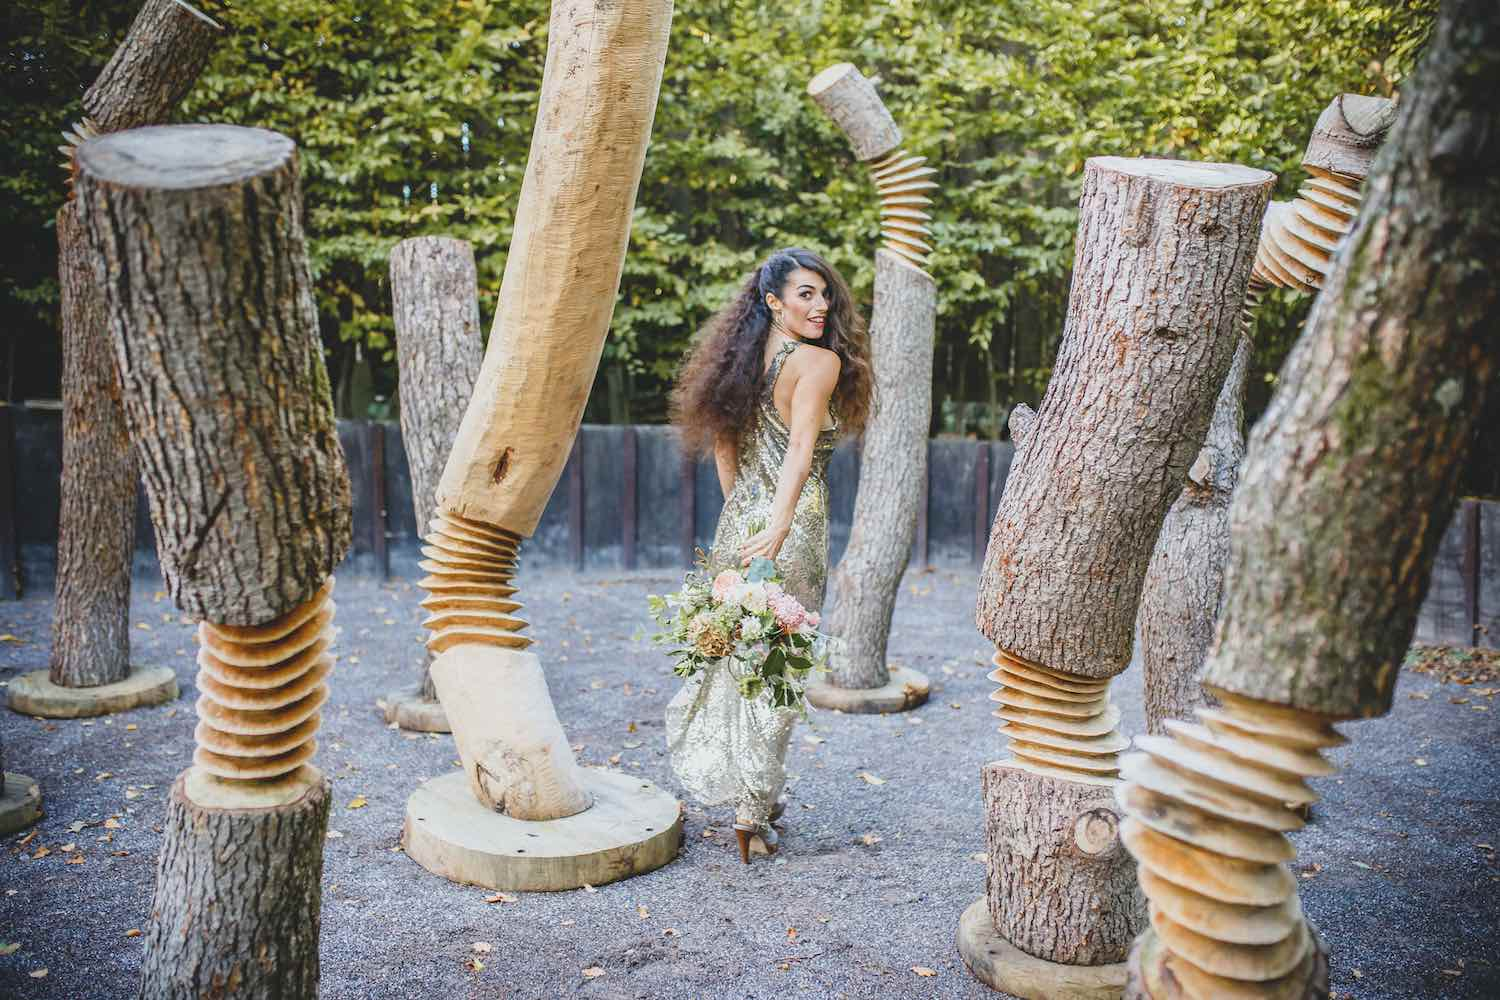 Bride with bouquet in woodland sculpture park